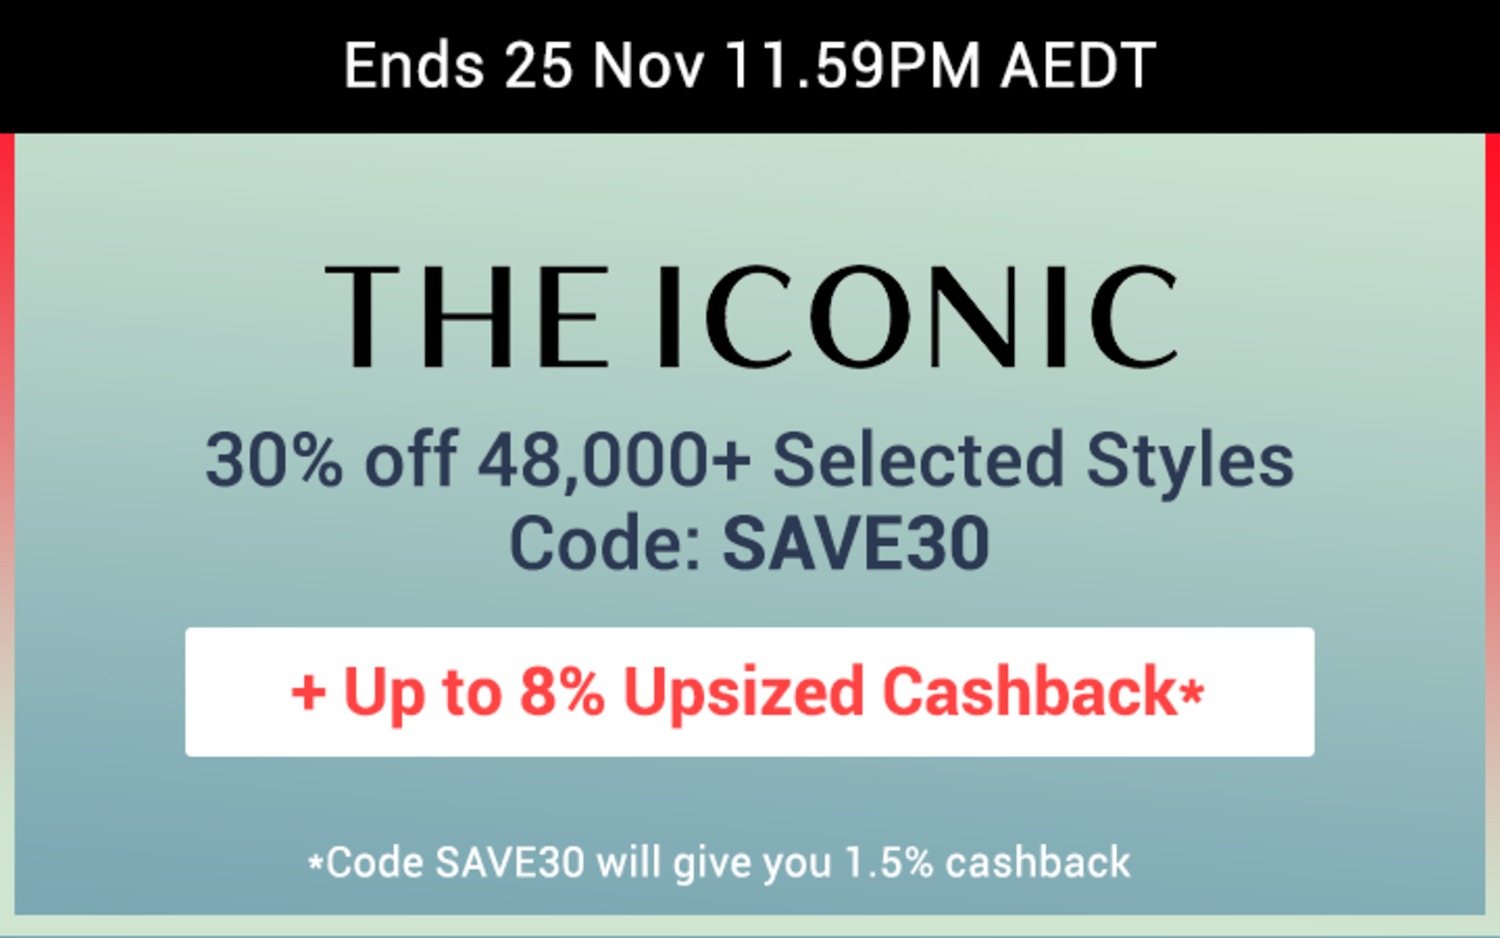 THE ICONIC - 30% off Selected Styles - Black Friday Cyber Monday BFCM